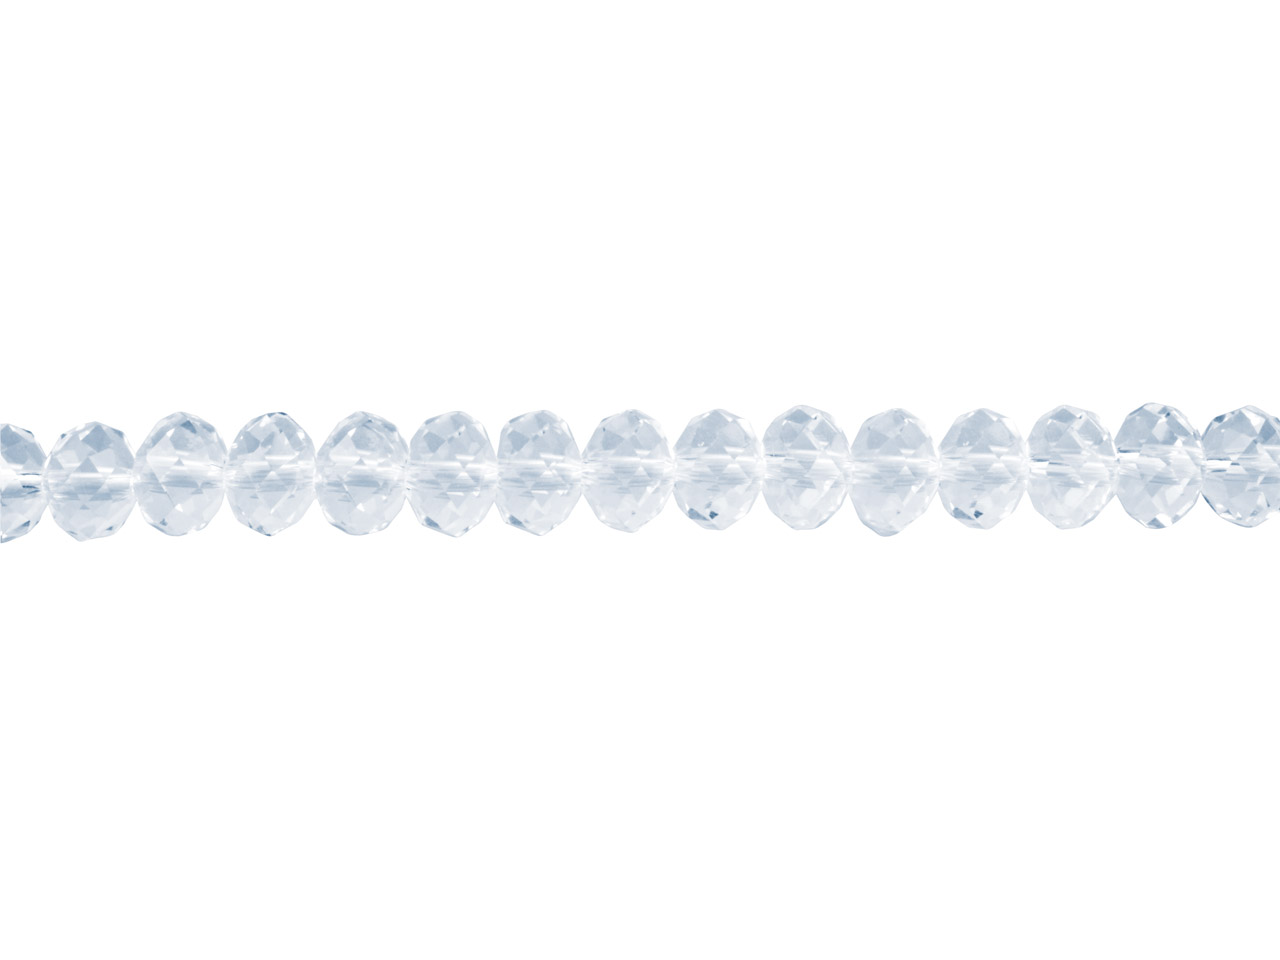 Crystal Faceted Rondelle Clear     6x8mm Beads, 16